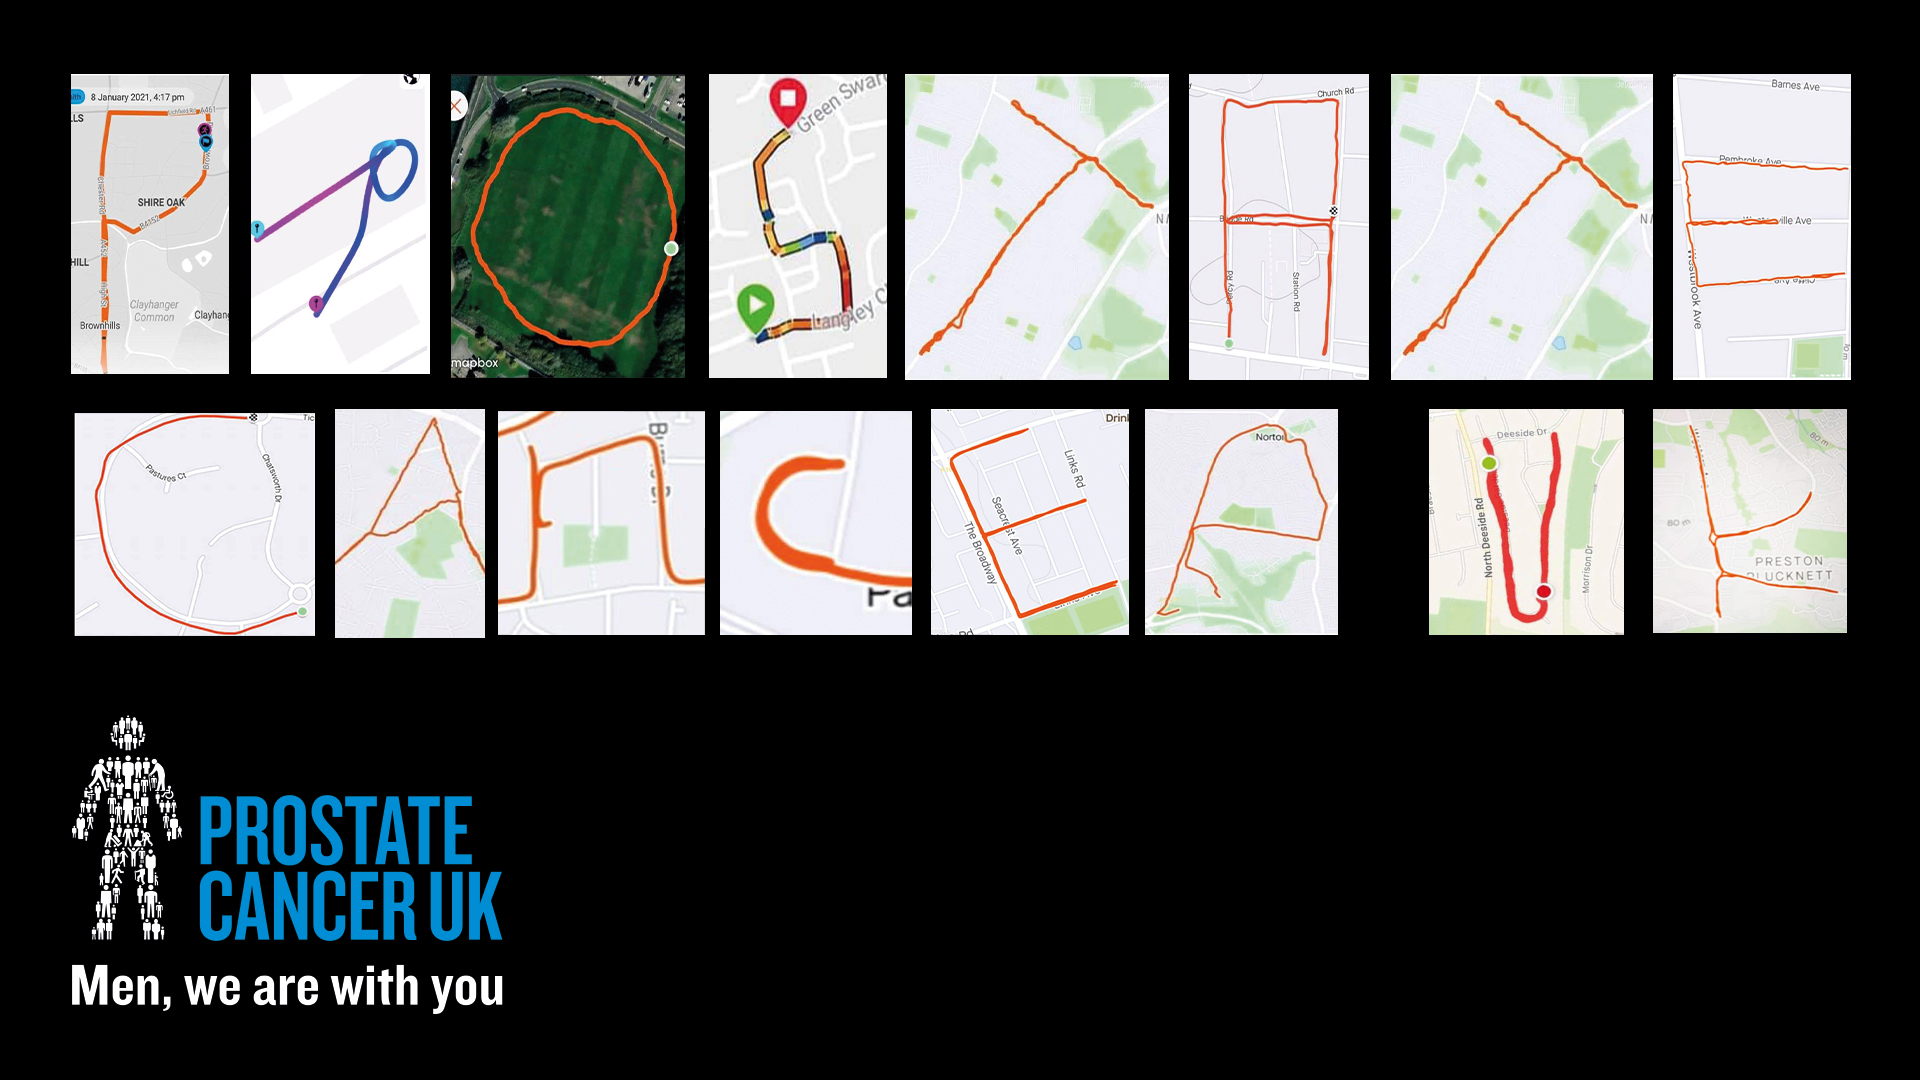 Runners spell out 'PROSTATE CANCER UK' on their running apps